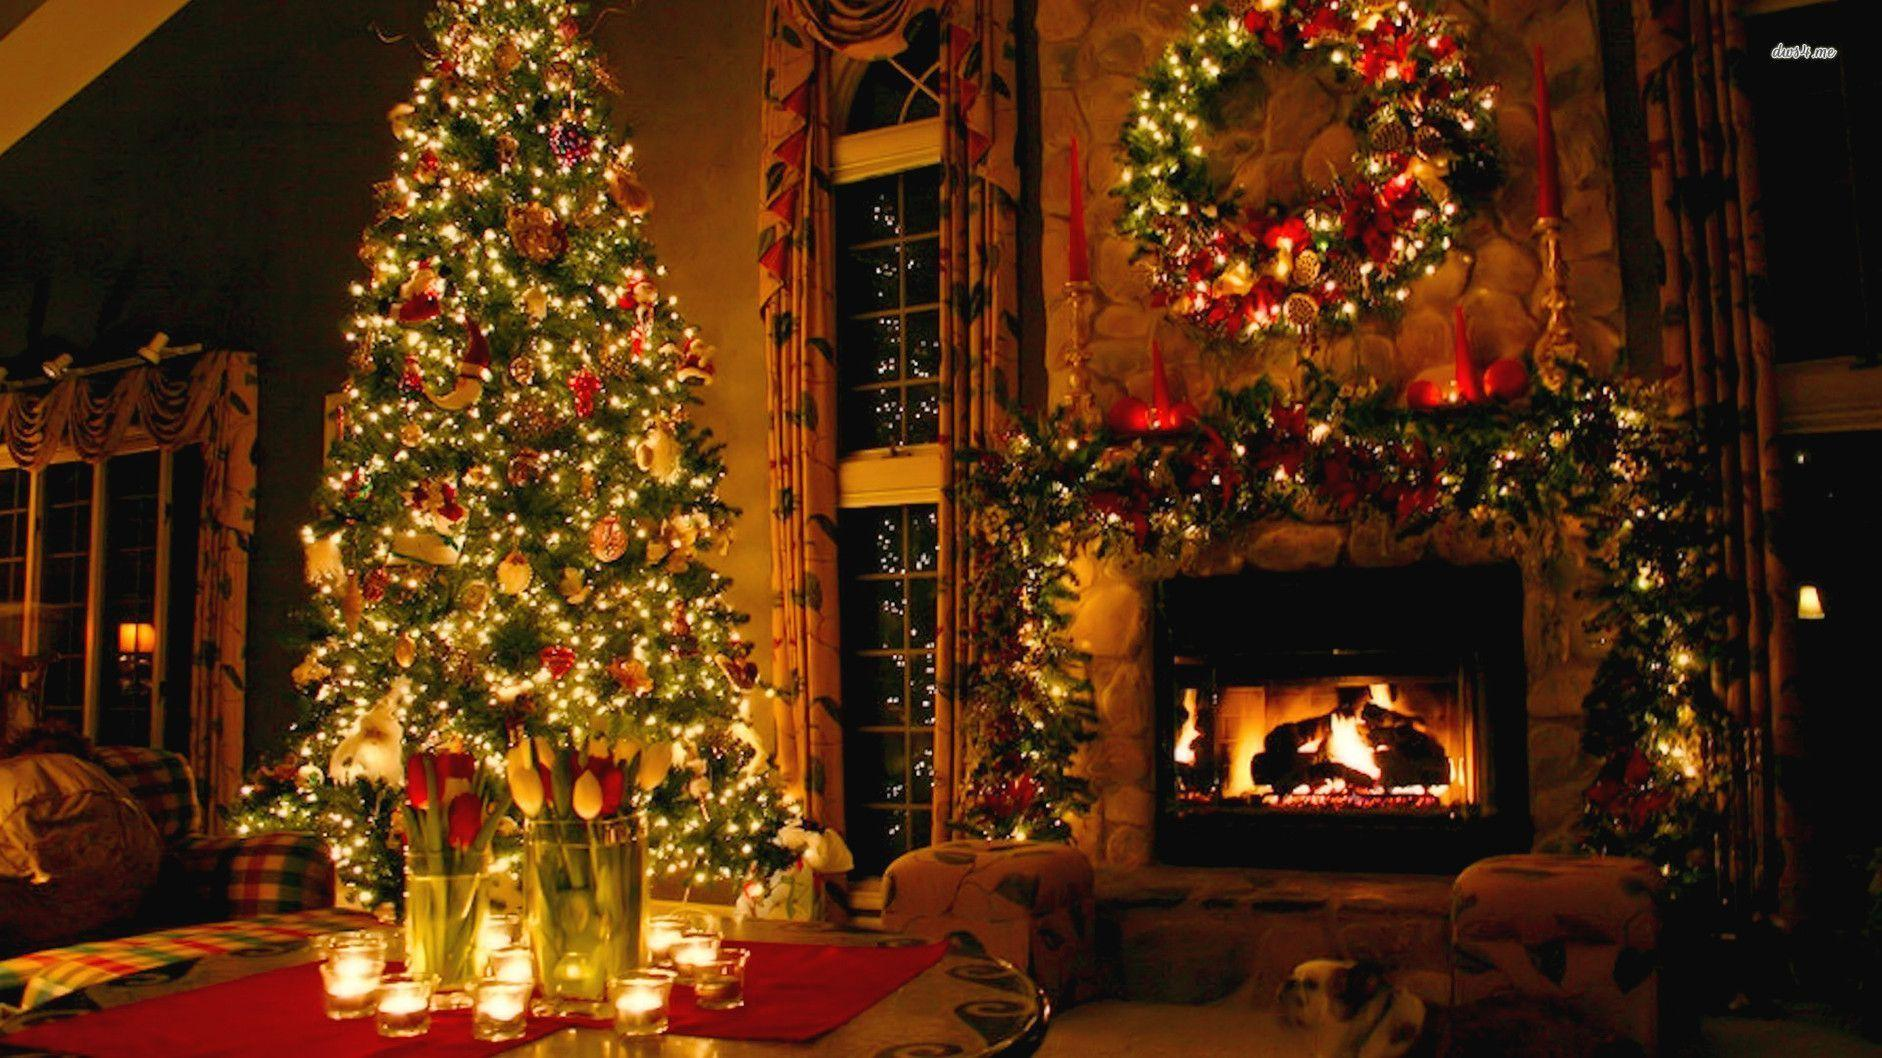 Christmas Fireplace Wallpaper Christmas Fireplace Backgrounds Wallpaper Cave